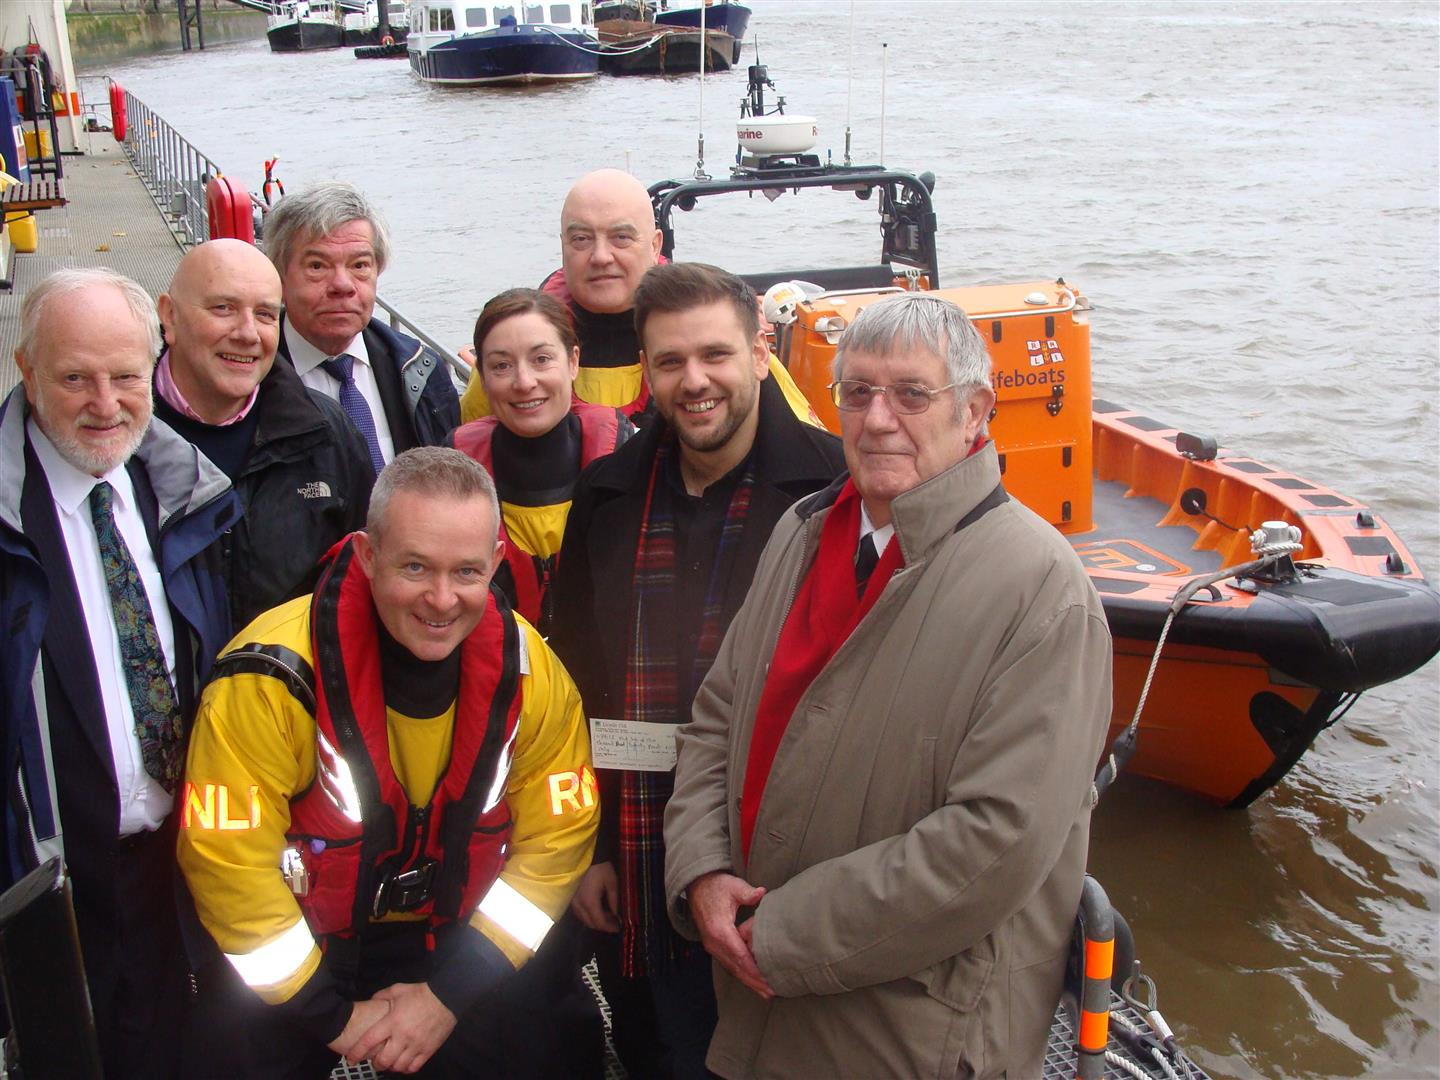 Lodge donates £1000 to RNLI